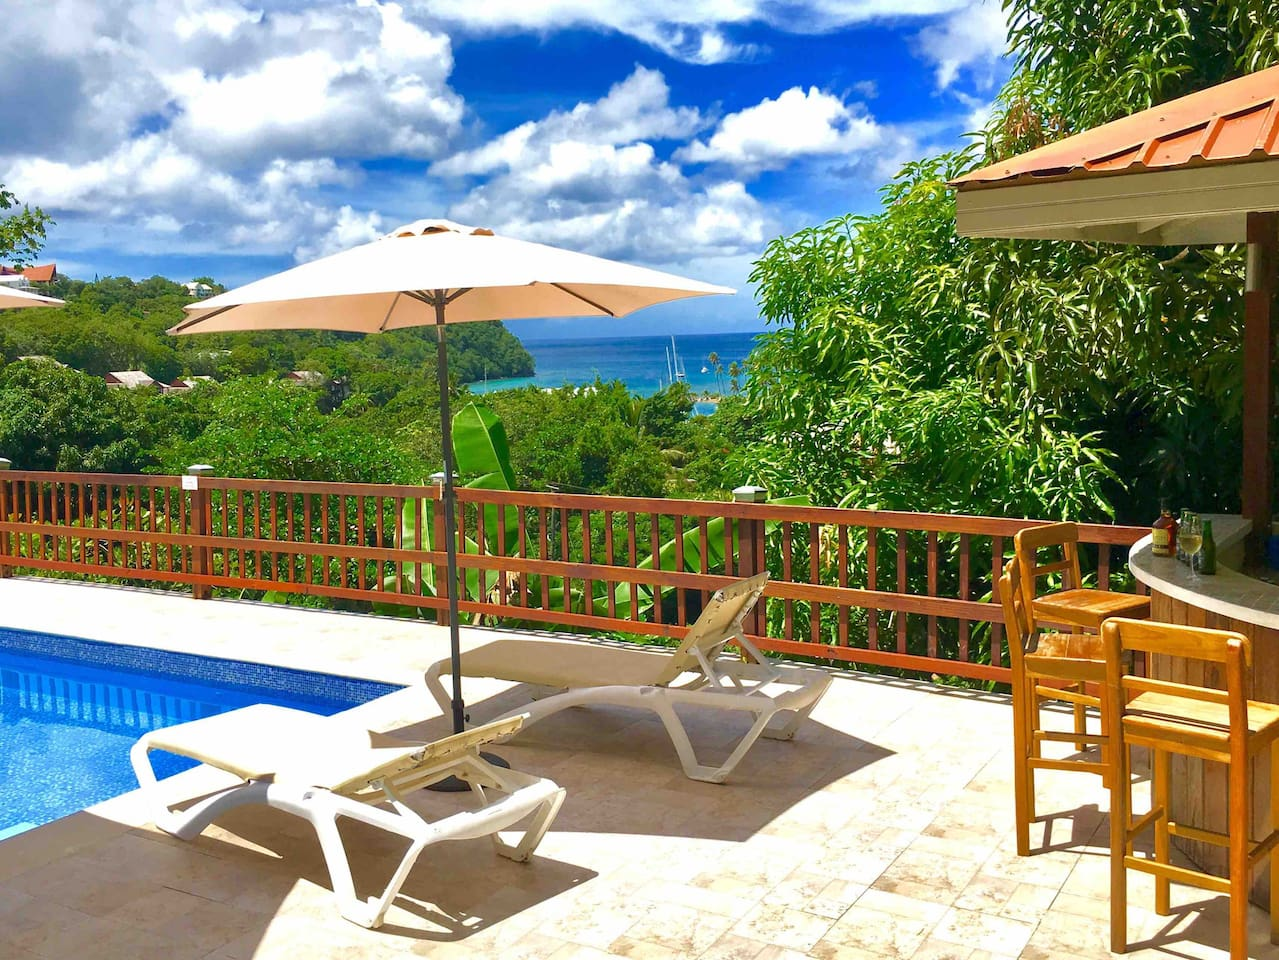 Relax and chill by the pool and how about a local beer Piton while you relax and admire the view.